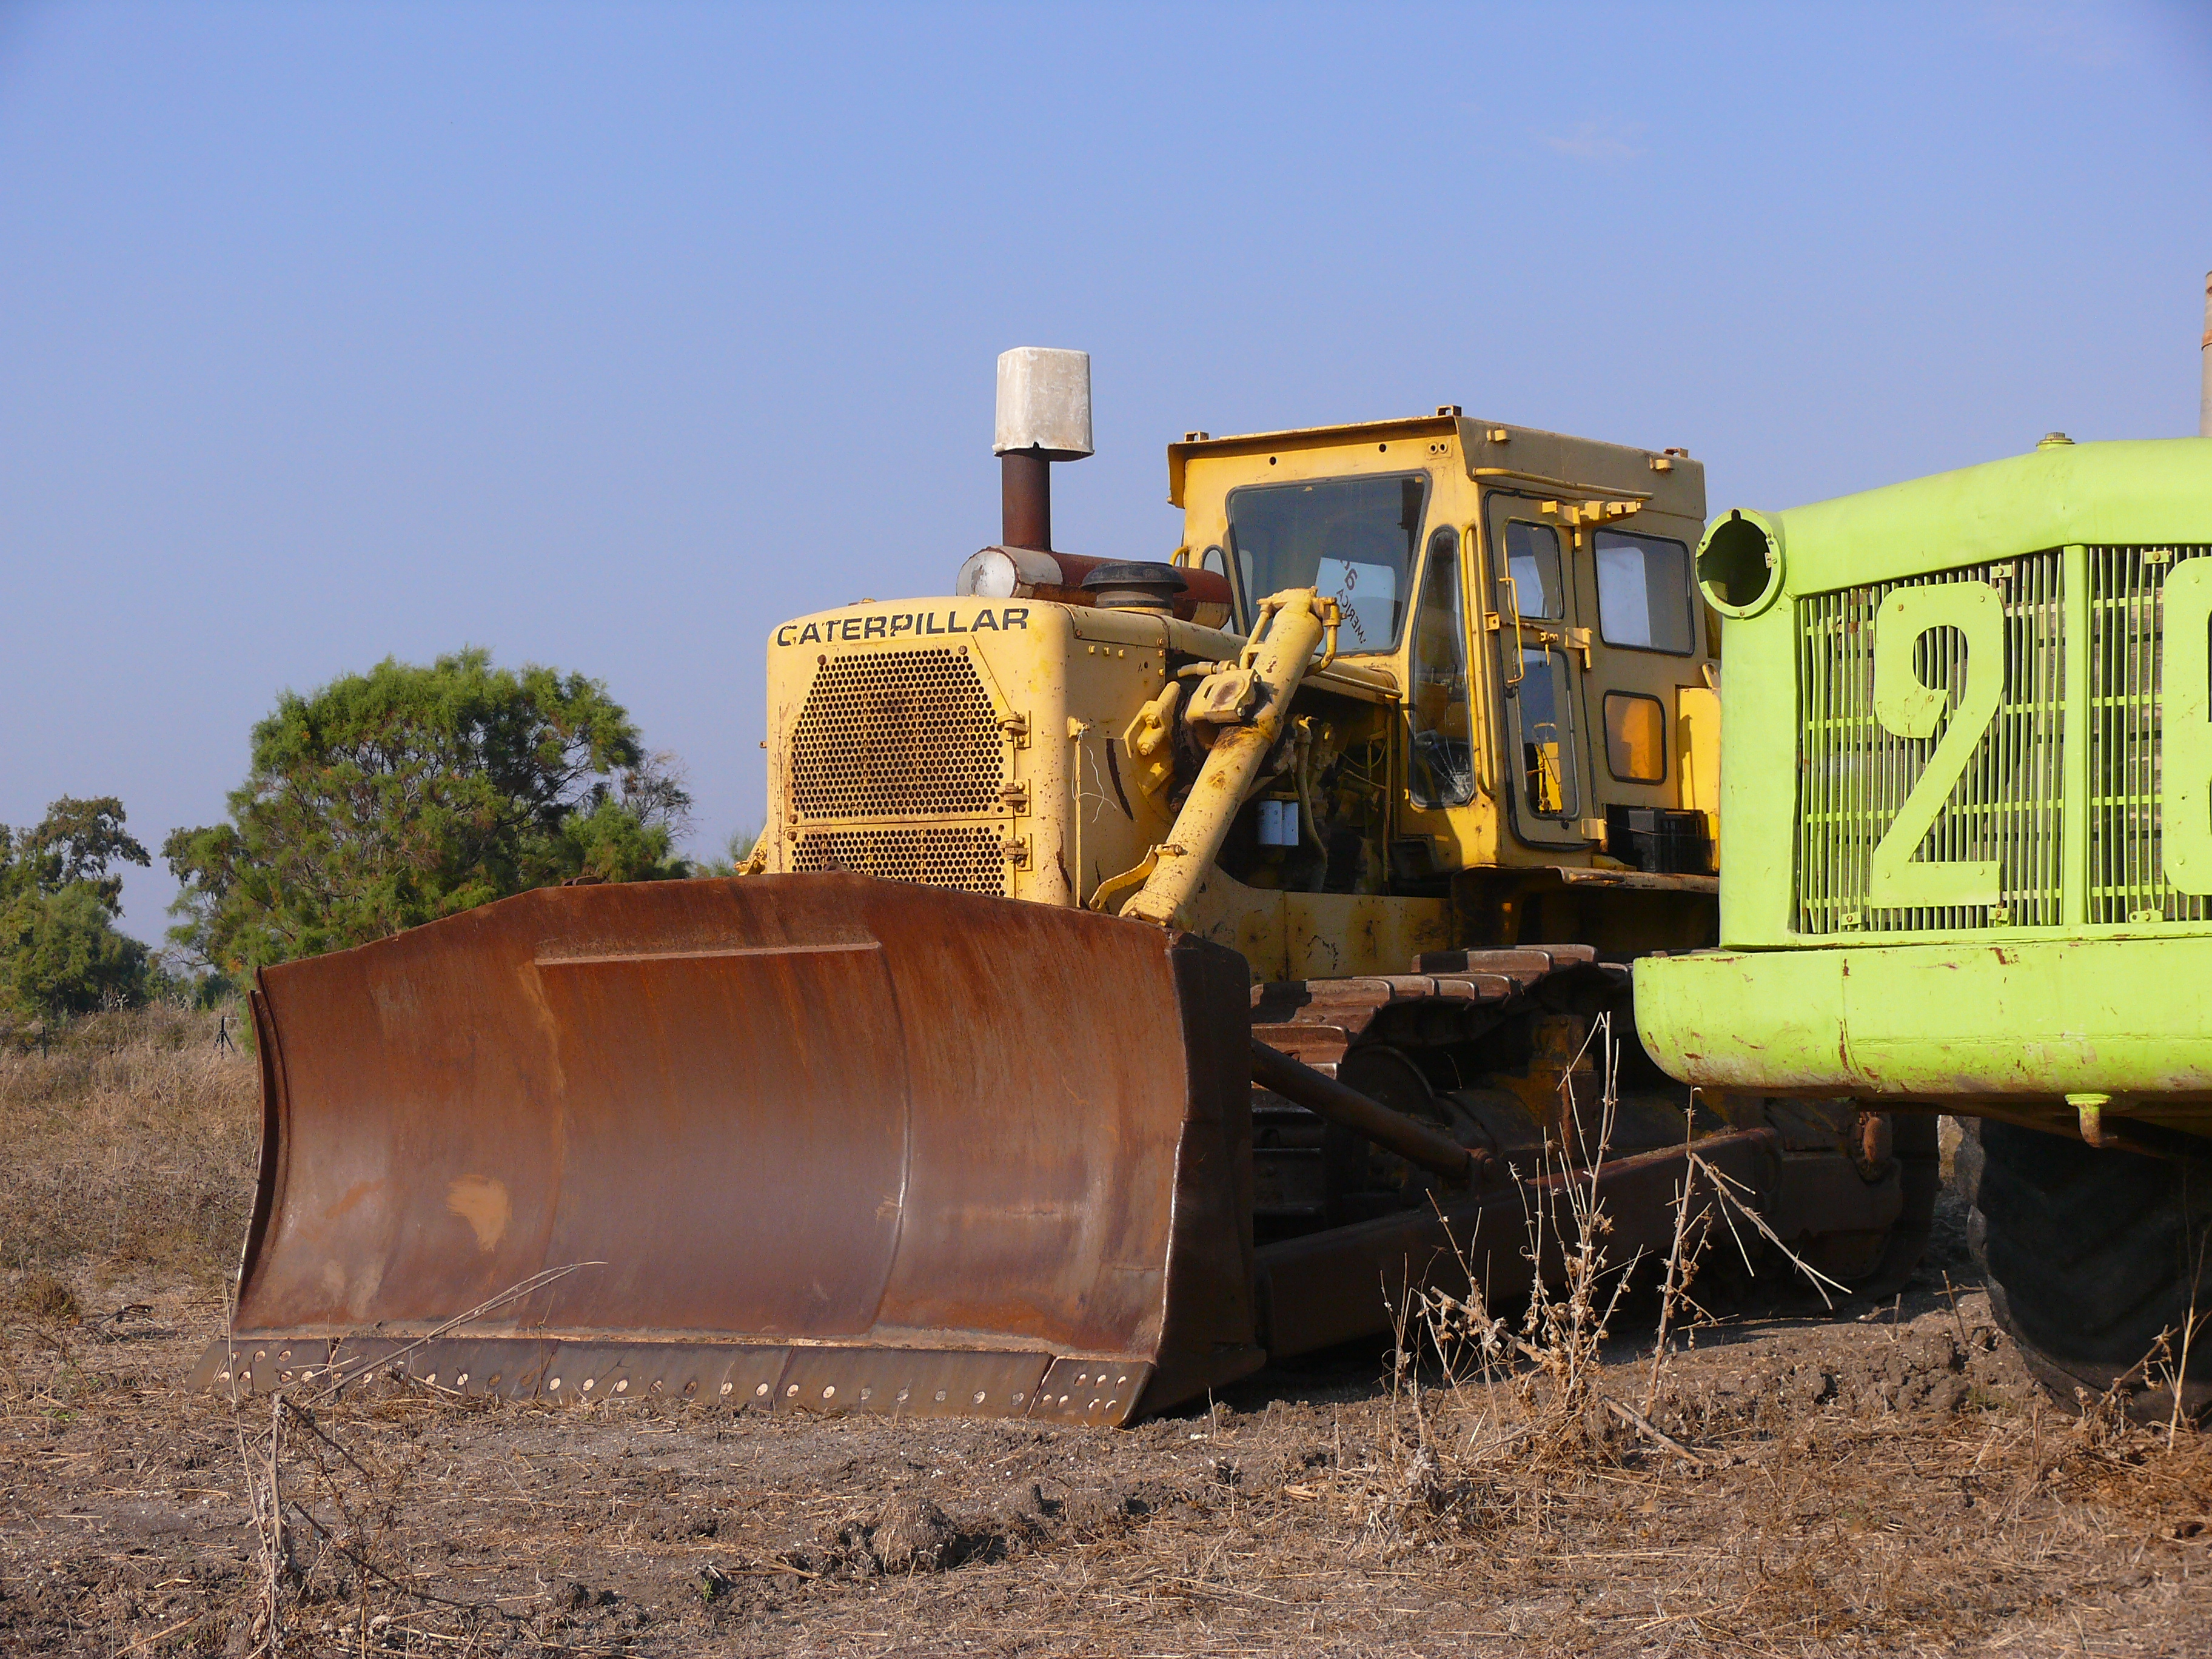 Caterpillar d9 photo - 7